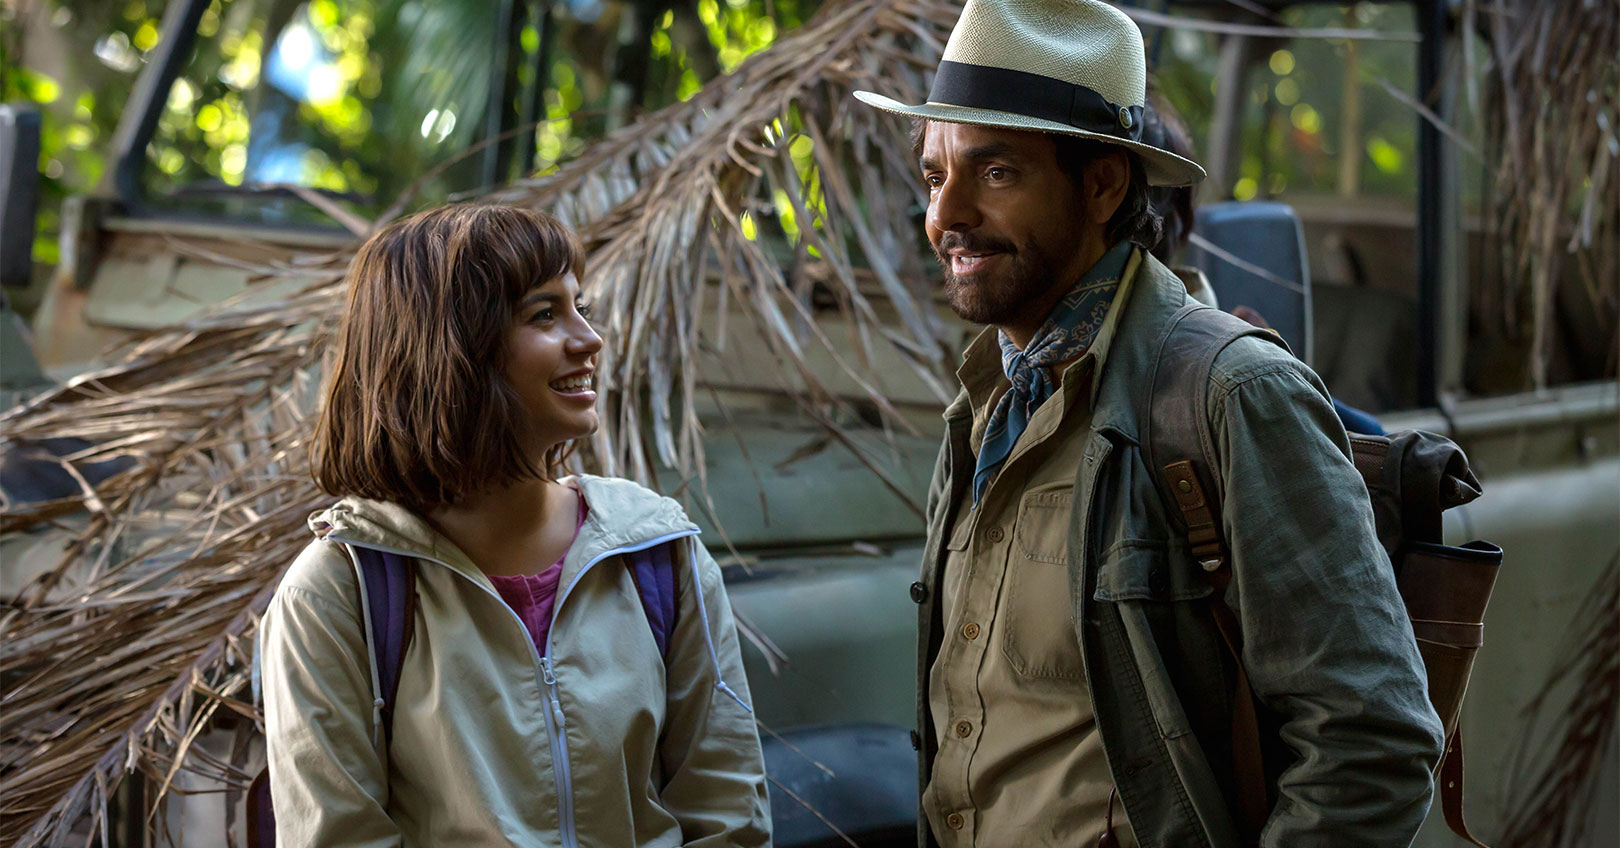 Dora and the Lost City of Gold - Isabela Moner and Eugenio Derbez